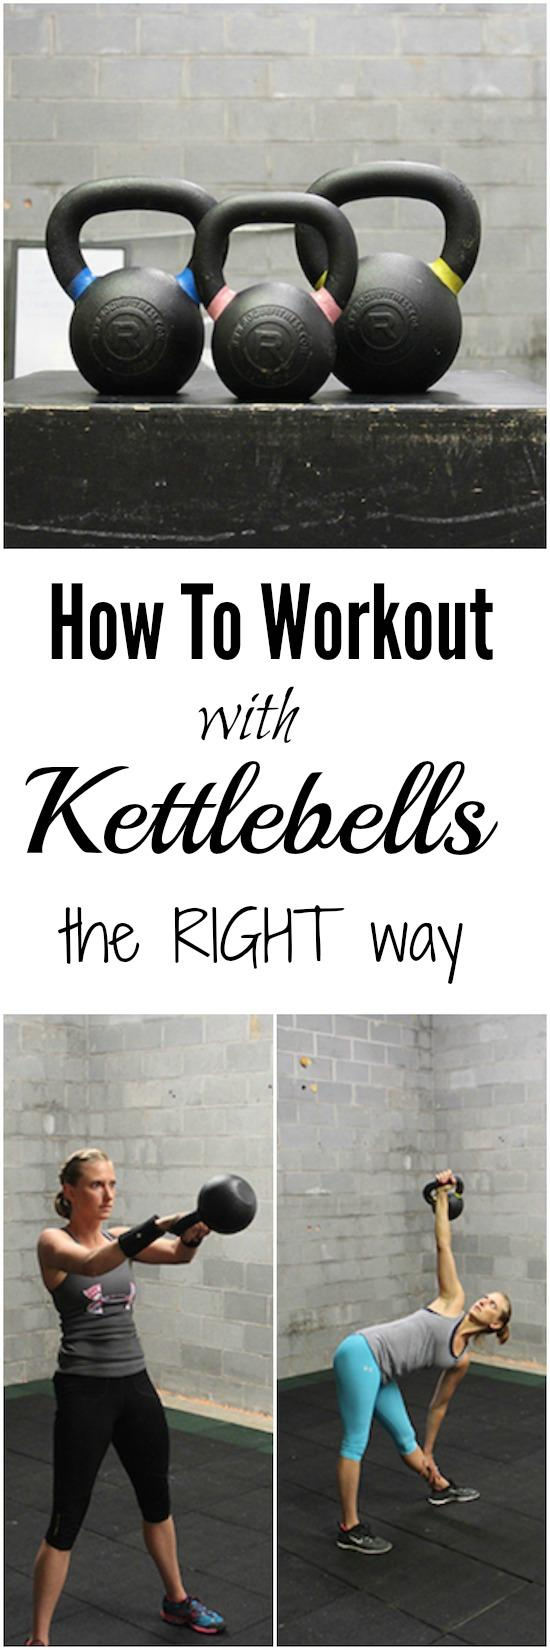 Want to learn how to workout with kettlebells? Make sure you do it right! Click here to learn the fundamentals!